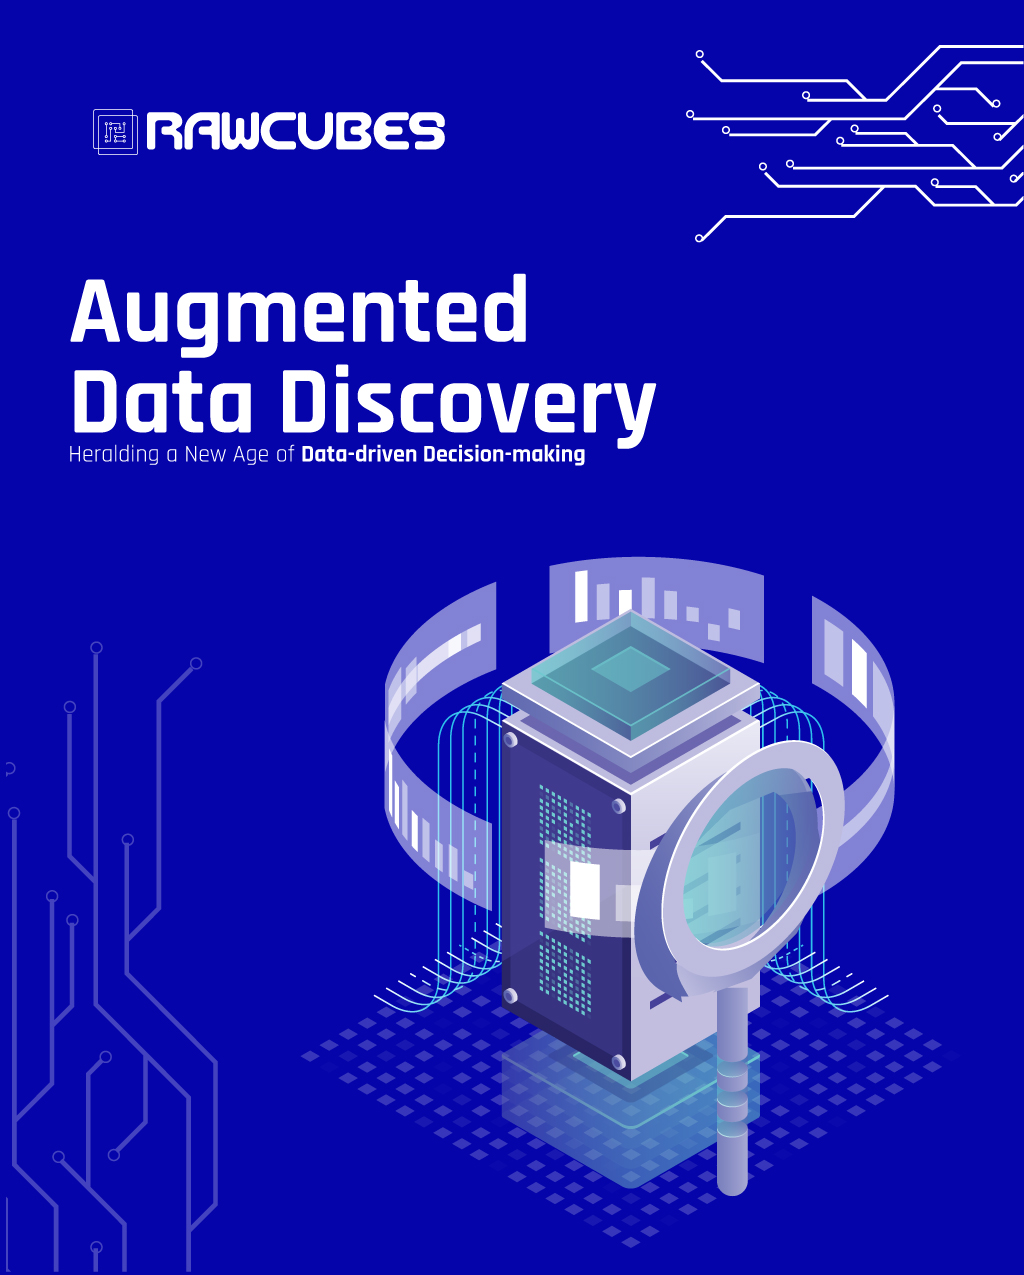 analytics & tools for data discovery